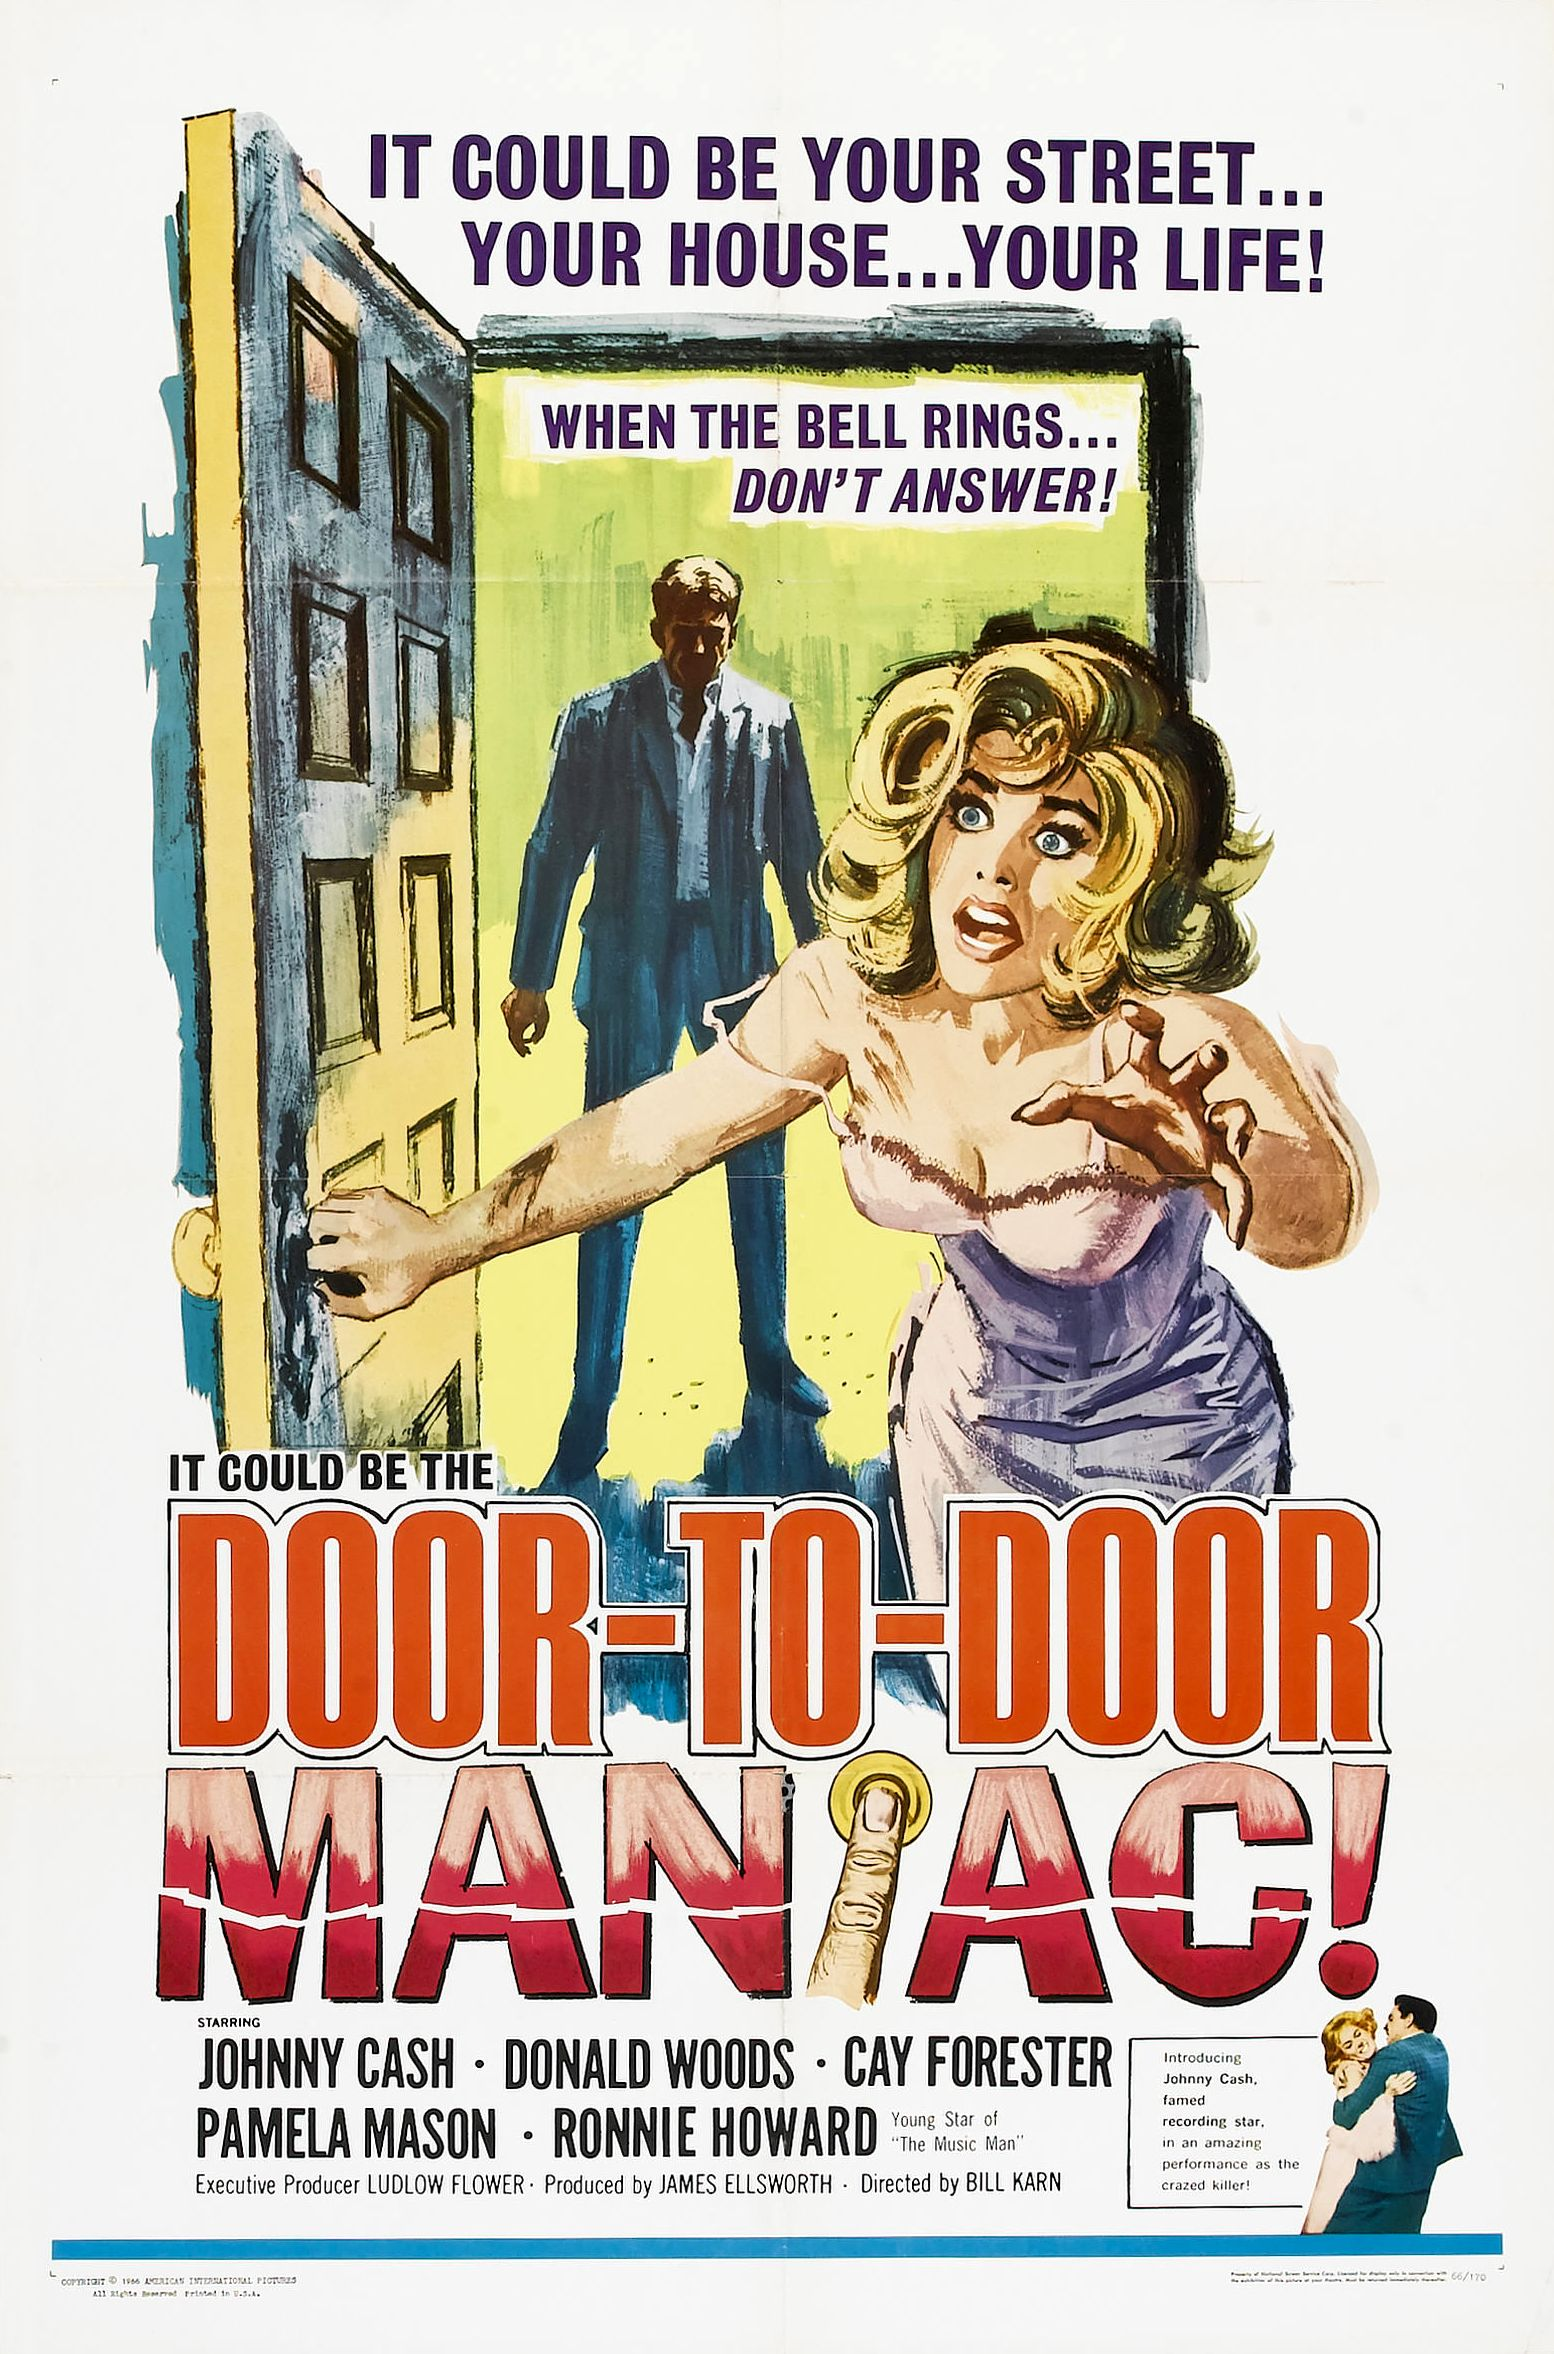 Five Minutes to Live (Door to Door Maniac)